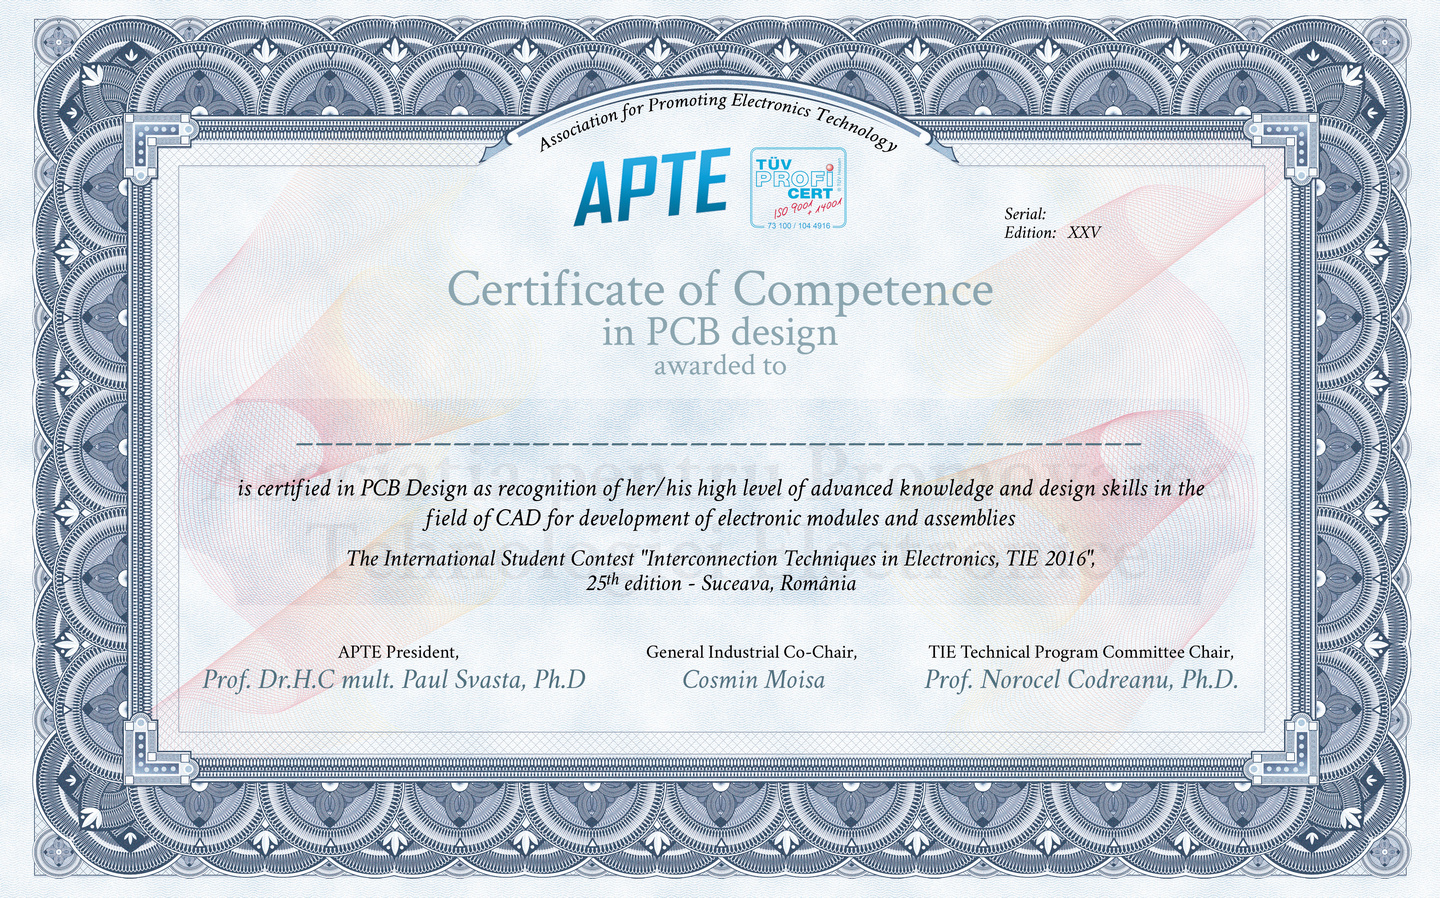 Model of Certificate of Competence in PCB design